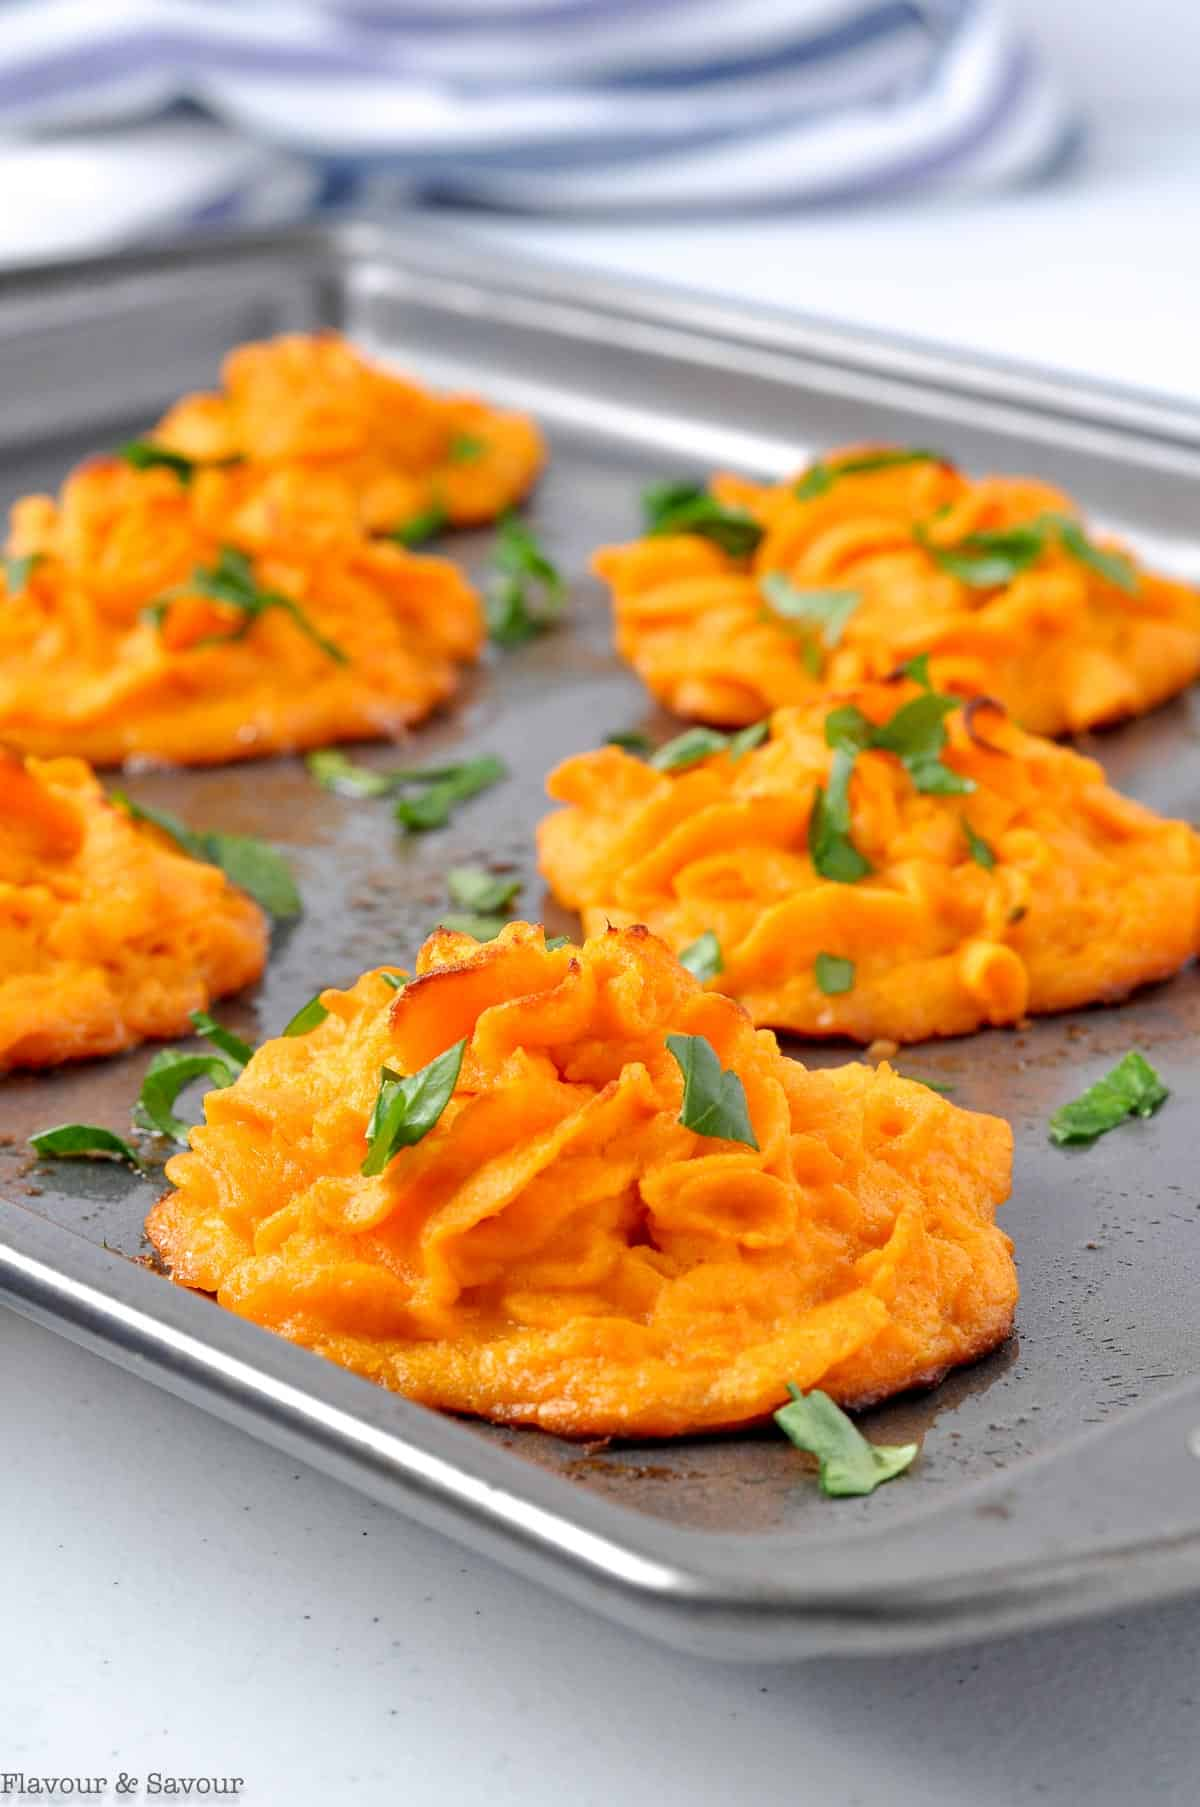 Duchess sweet potato mounds on a baking sheet garnished with parsley